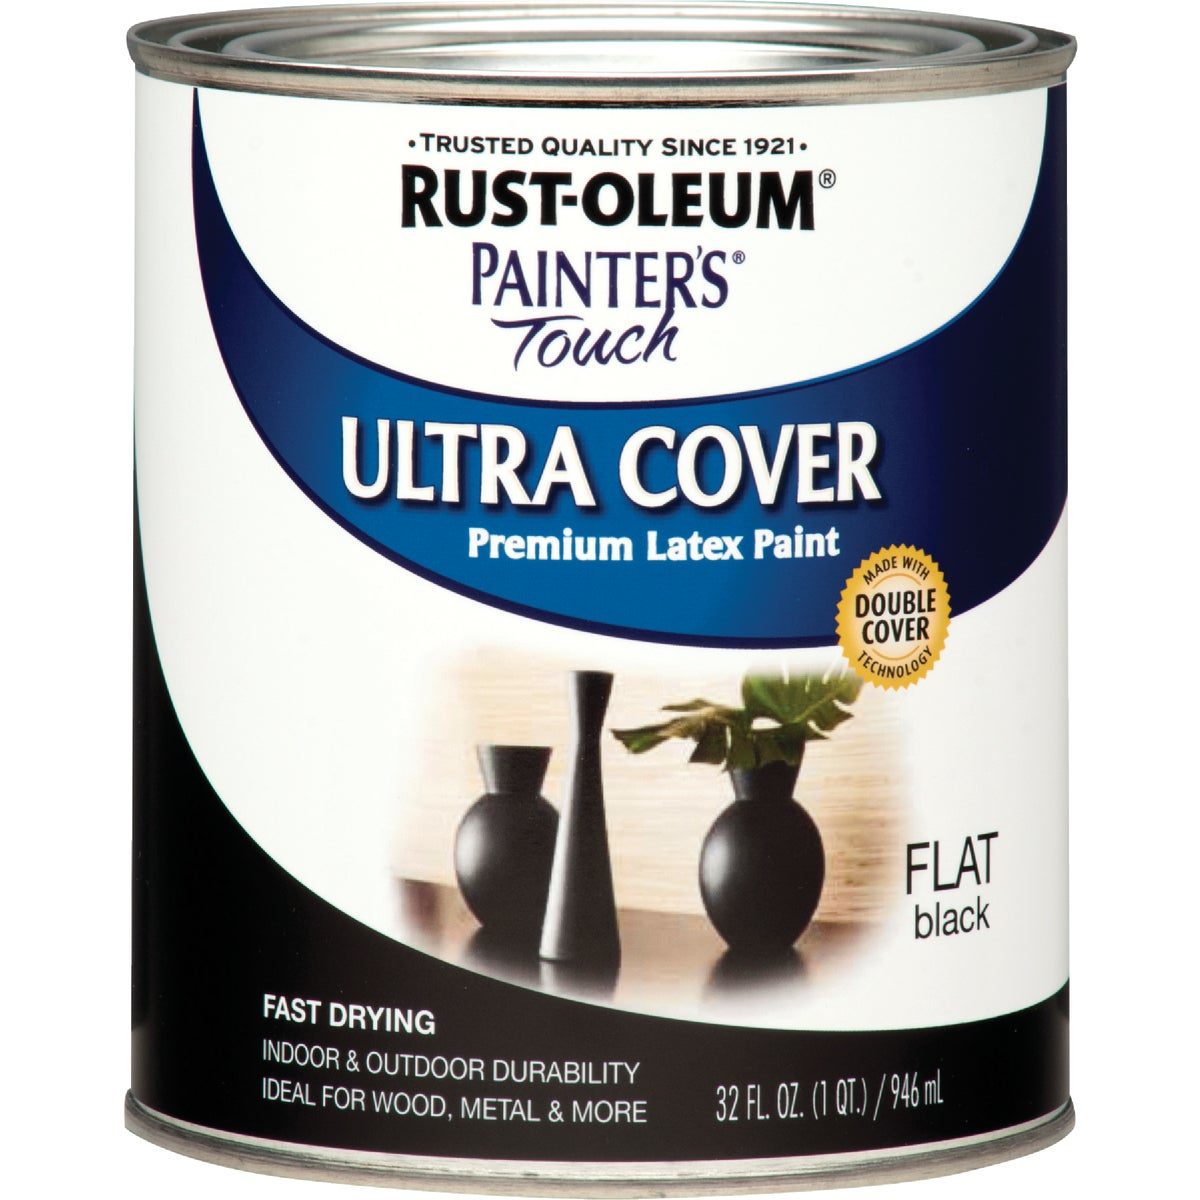 FLAT BLACK LATEX PAINT - 1976-502 by Rustoleum